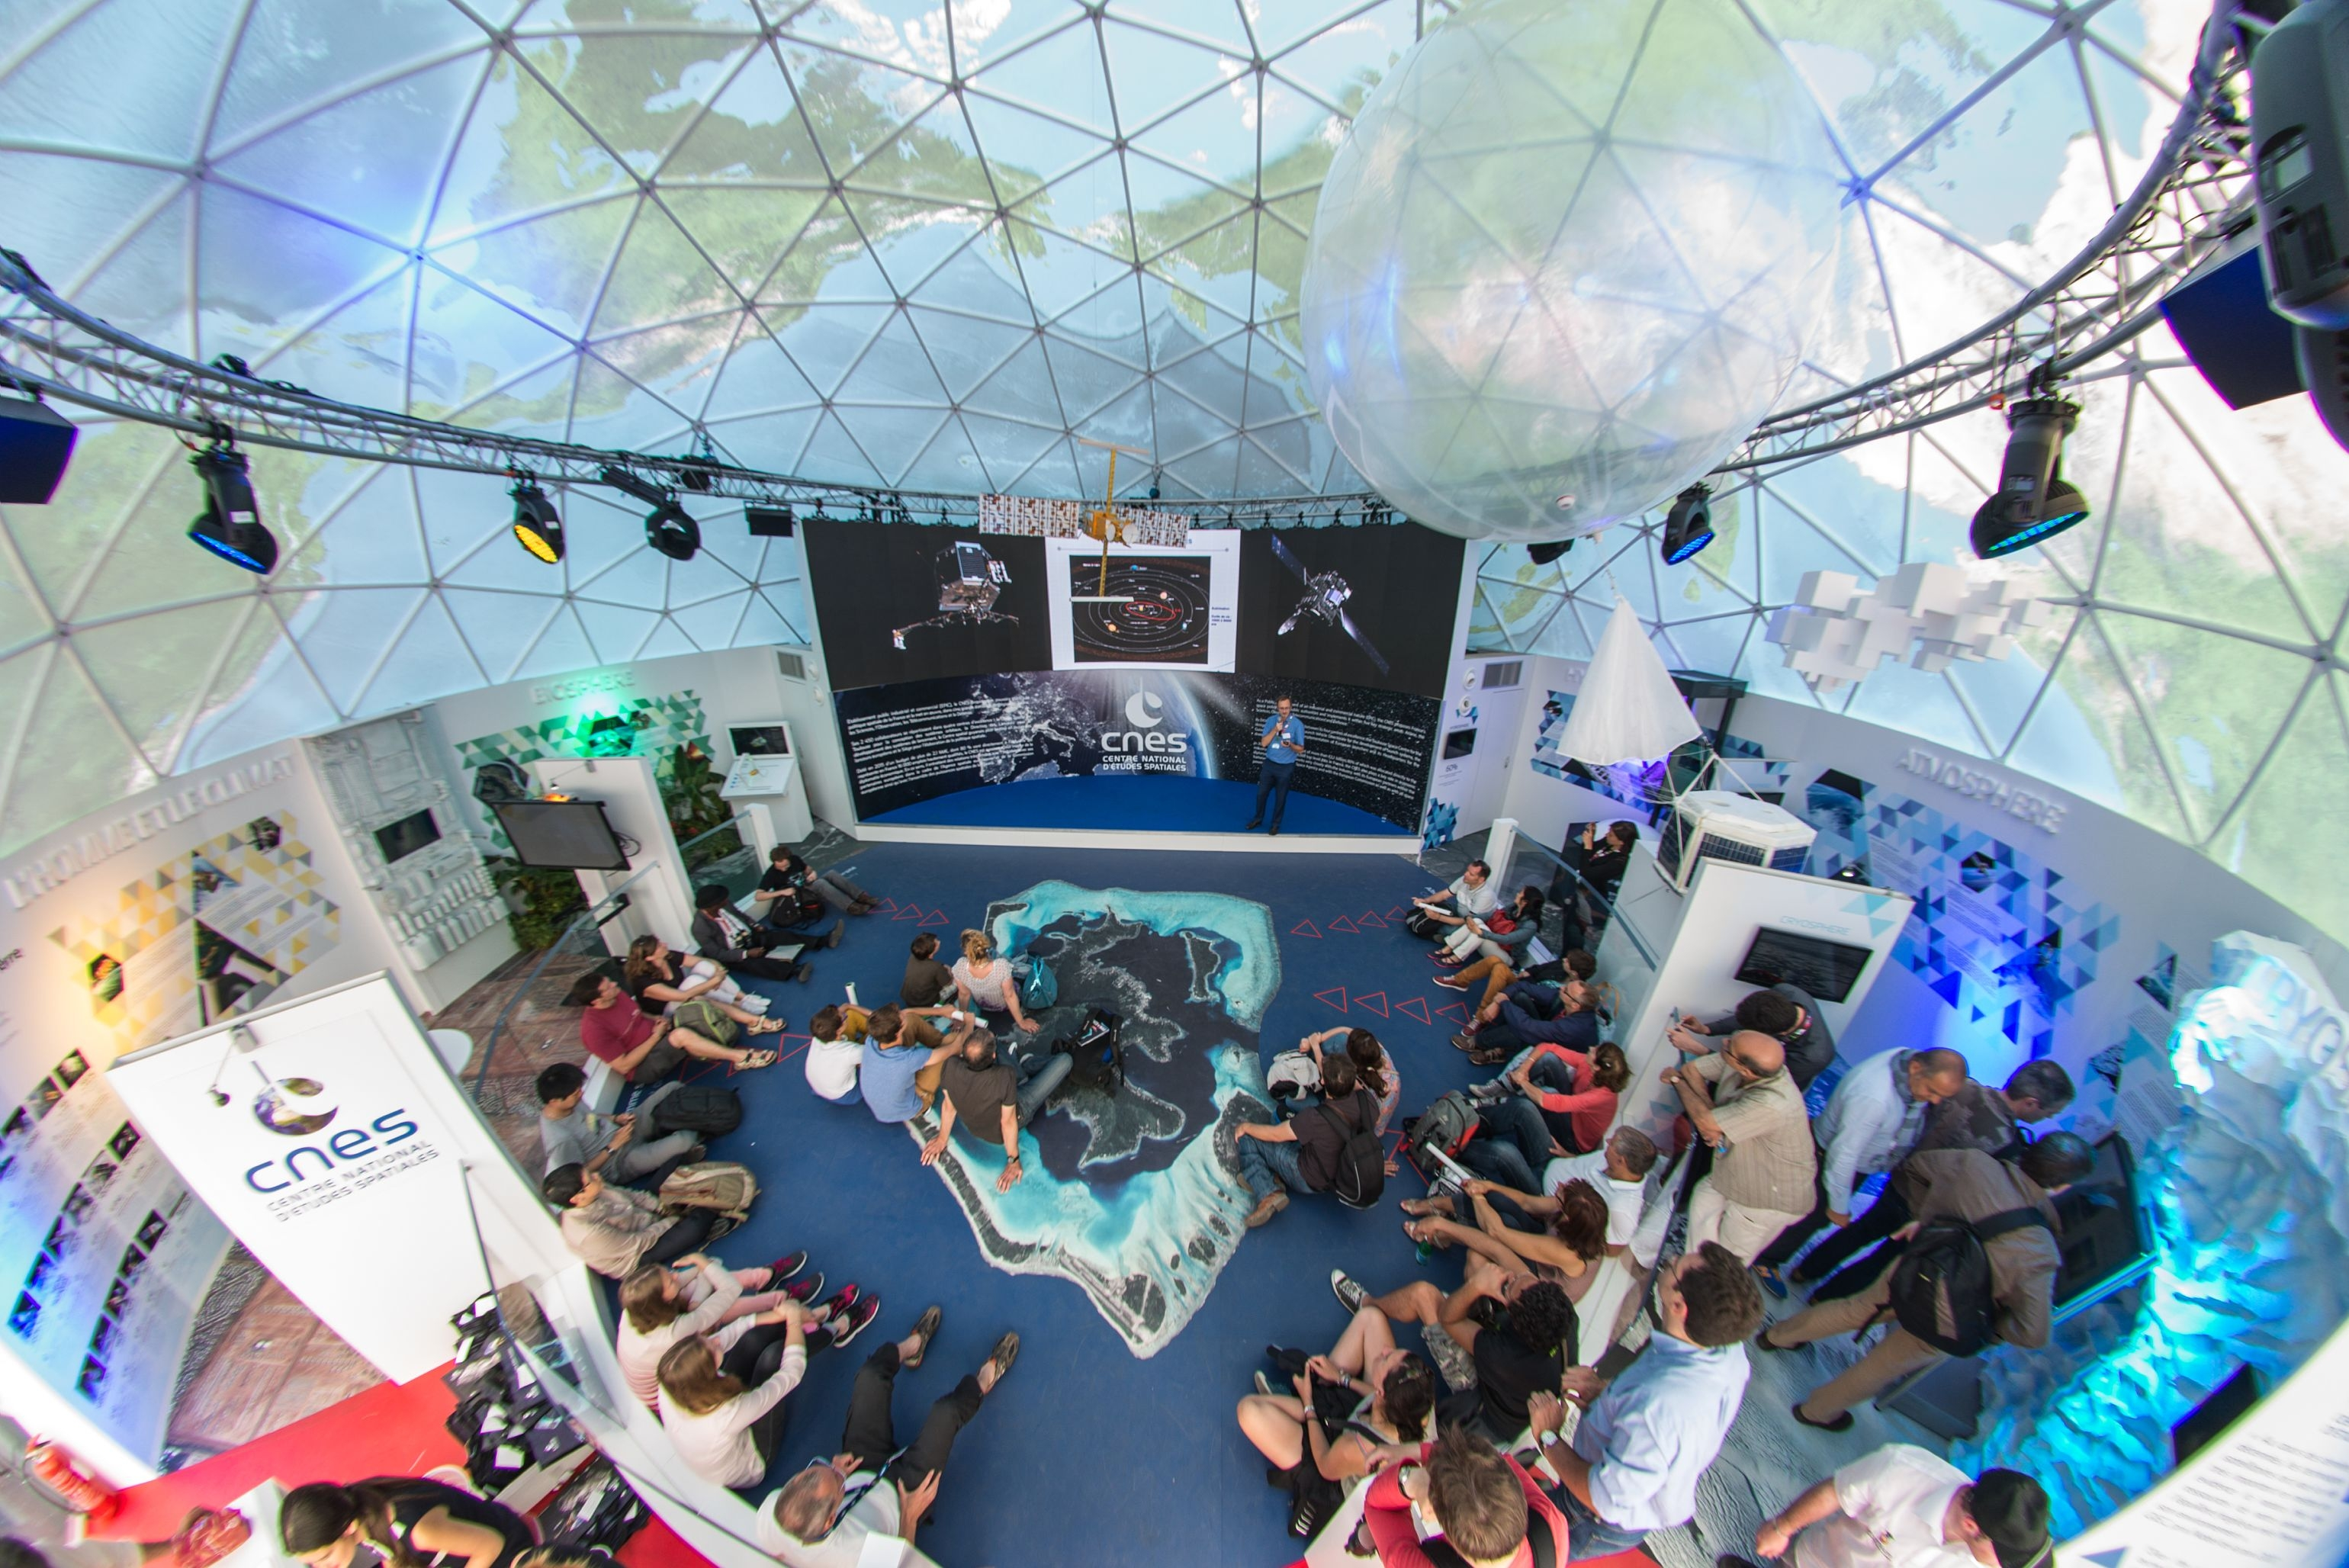 Cnes le pavillon du cnes au salon du bourget 2015 - Salon aeronautique du bourget 2015 ...